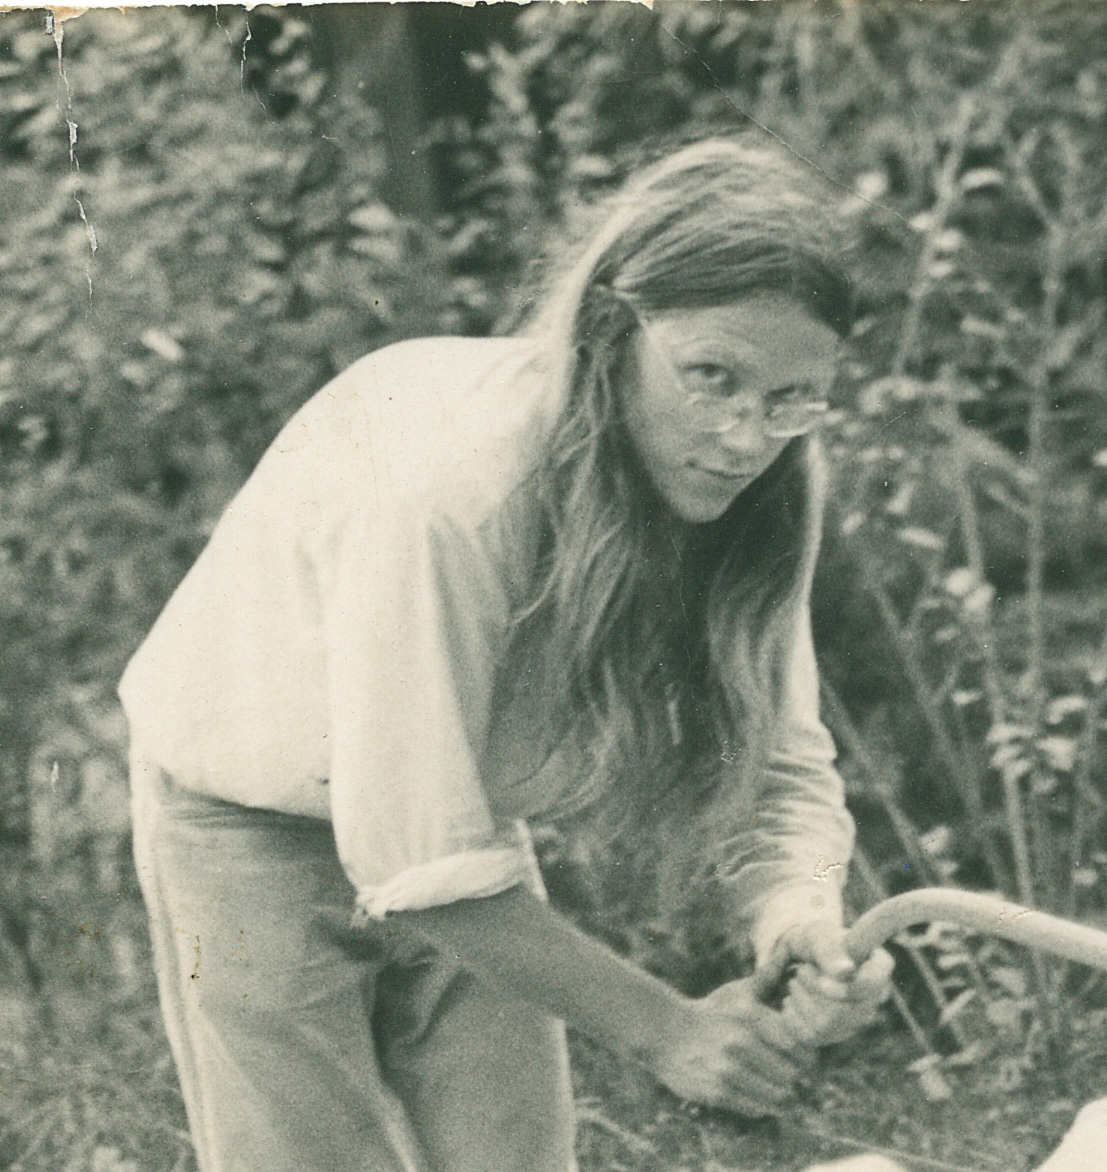 Black and white photo of young man using saw in garden setting.